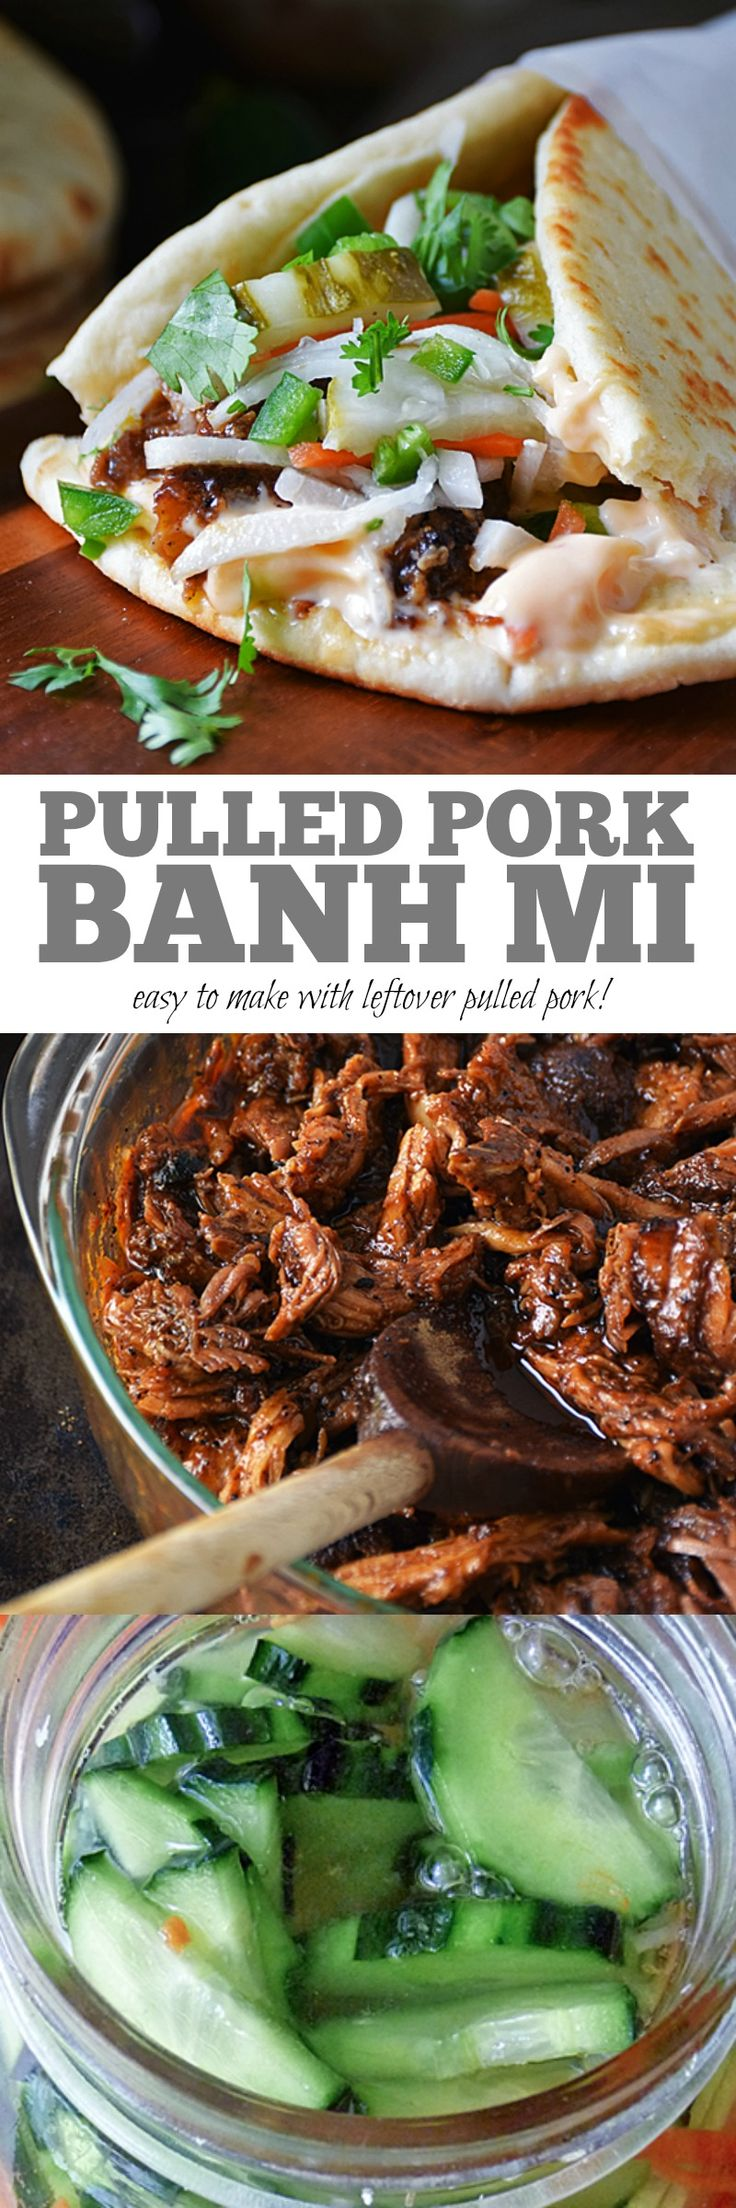 Pulled Pork Banh Mi | by Life Tastes Good is a unique and delicious way to re-purpose leftover pulled pork. A fusion of French and Vietnamese cuisine, the Banh Mi sandwich is a flavor powerhouse that gives all five senses a workout! #LTGrecipes